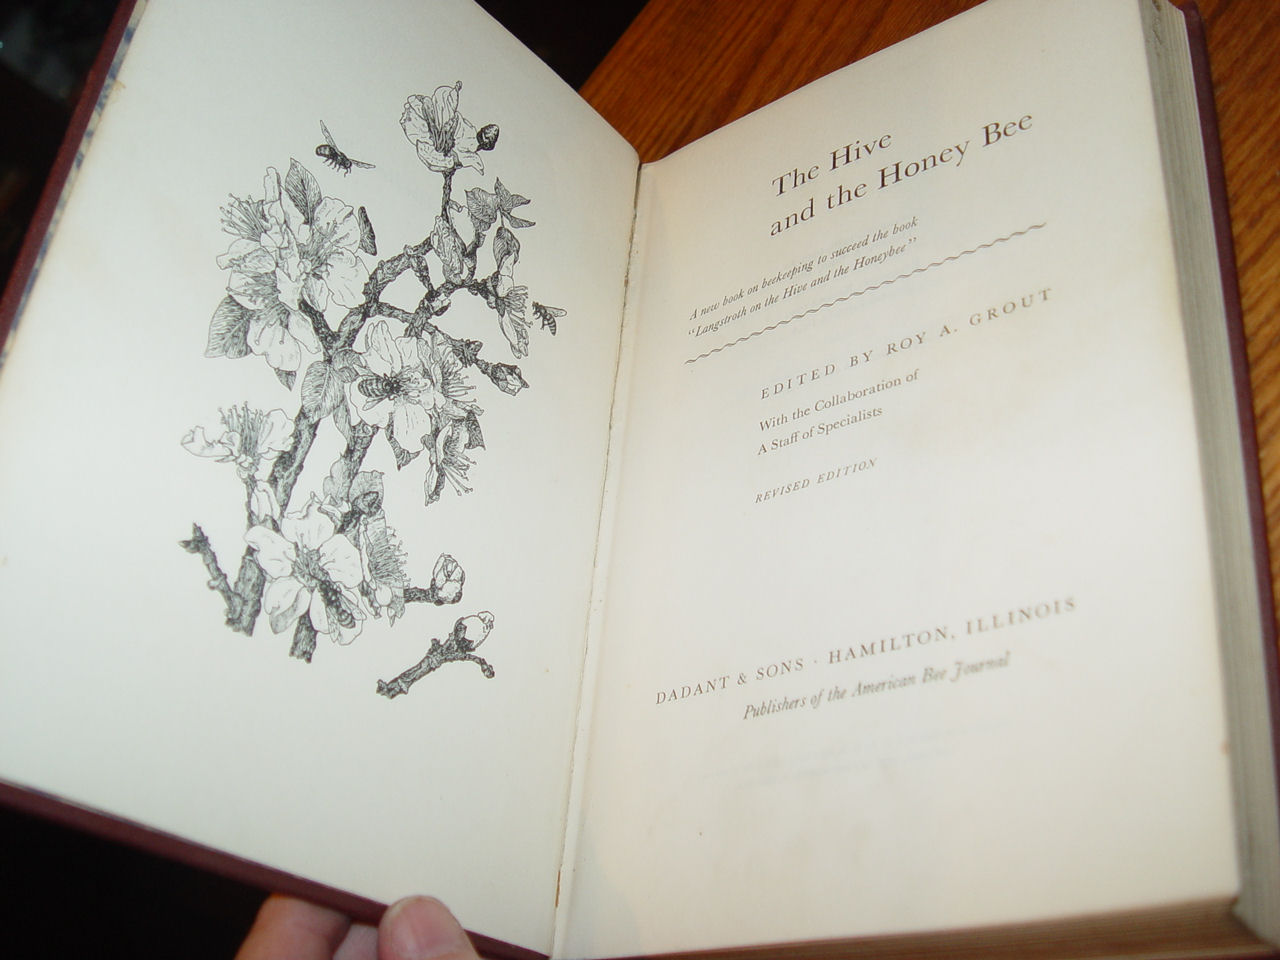 The Hive and                                         the Honey Bee Edited by Roy A.                                         Grout 1954 ~ Dadant & Sons                                         Ill